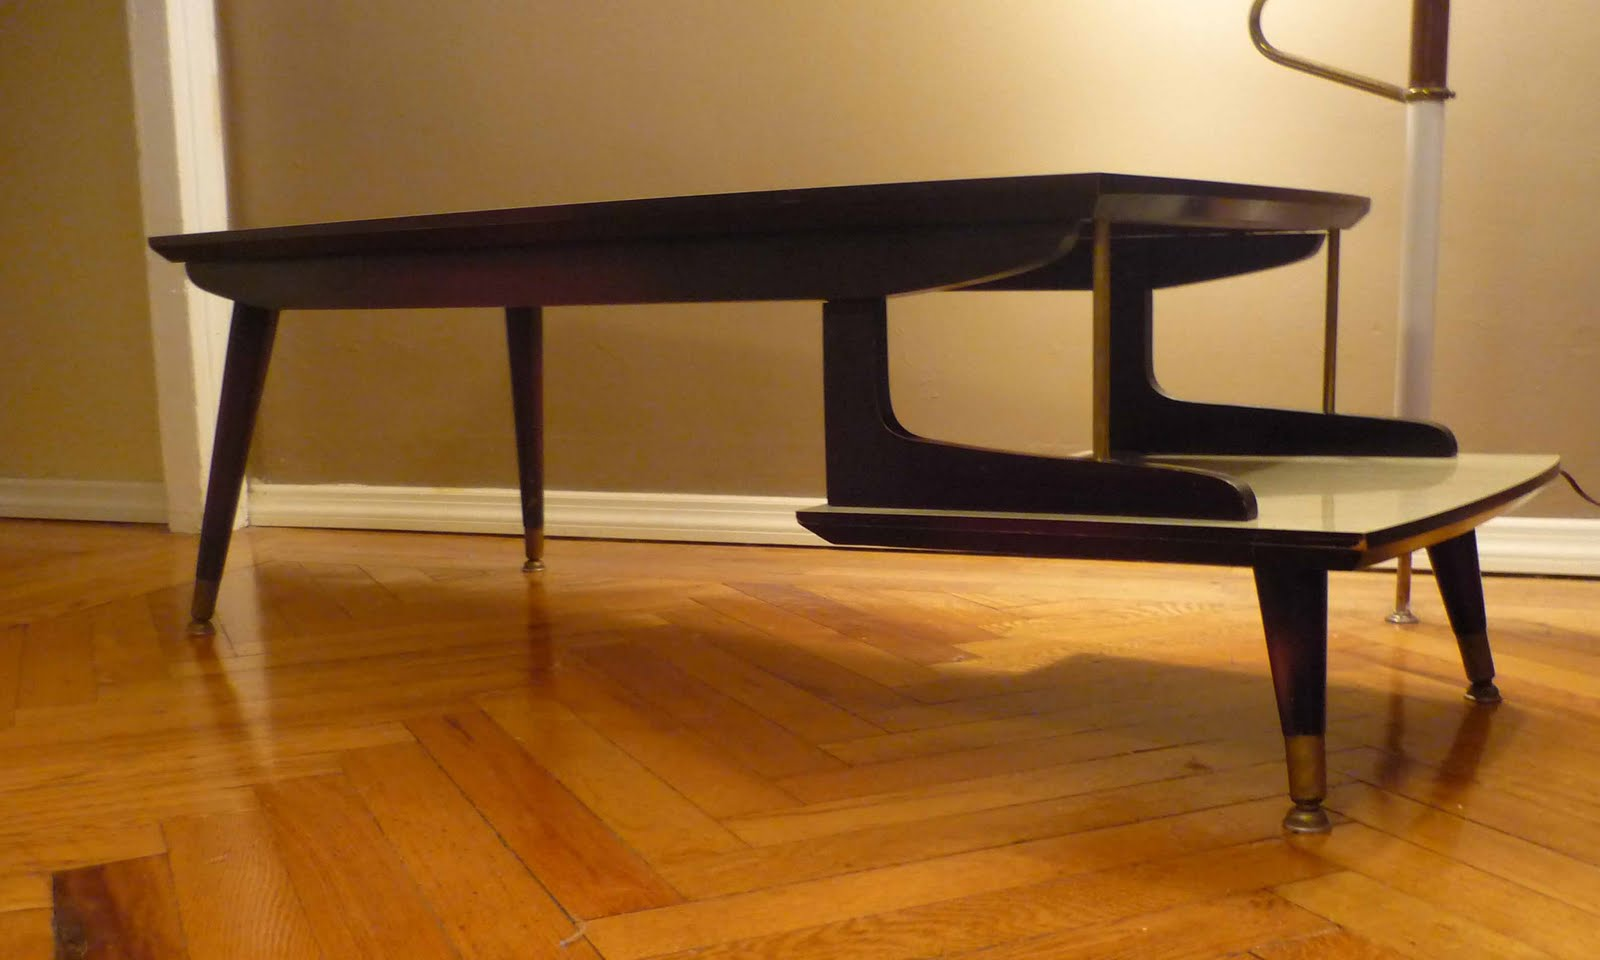 Vintage modern coffee table Mid century coffee tables